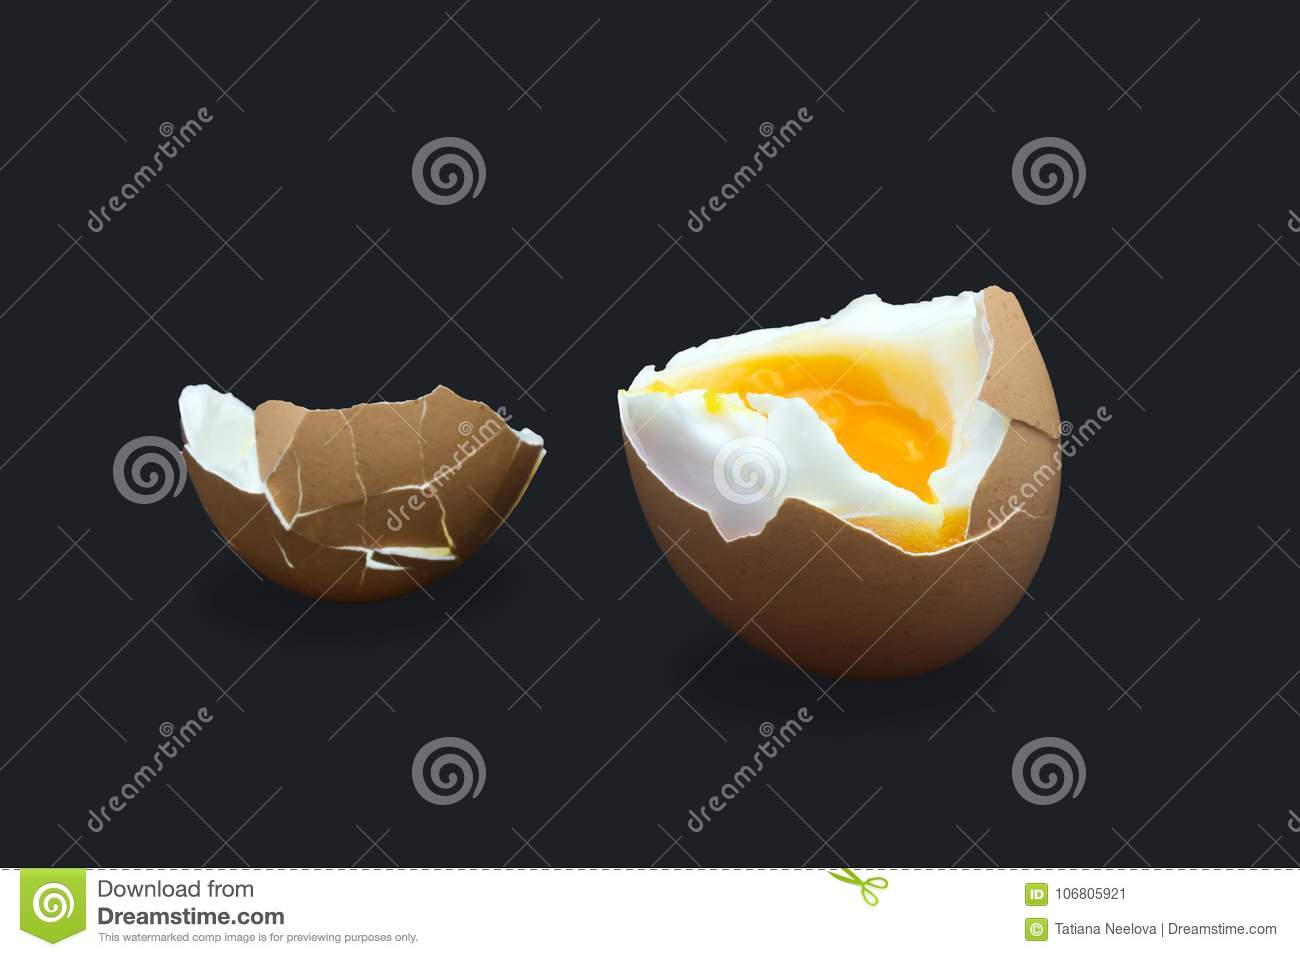 A photo of boiled smash broken hen beige egg isolated on dark blue. Egg`s liquid yolk photo, bright contrast.